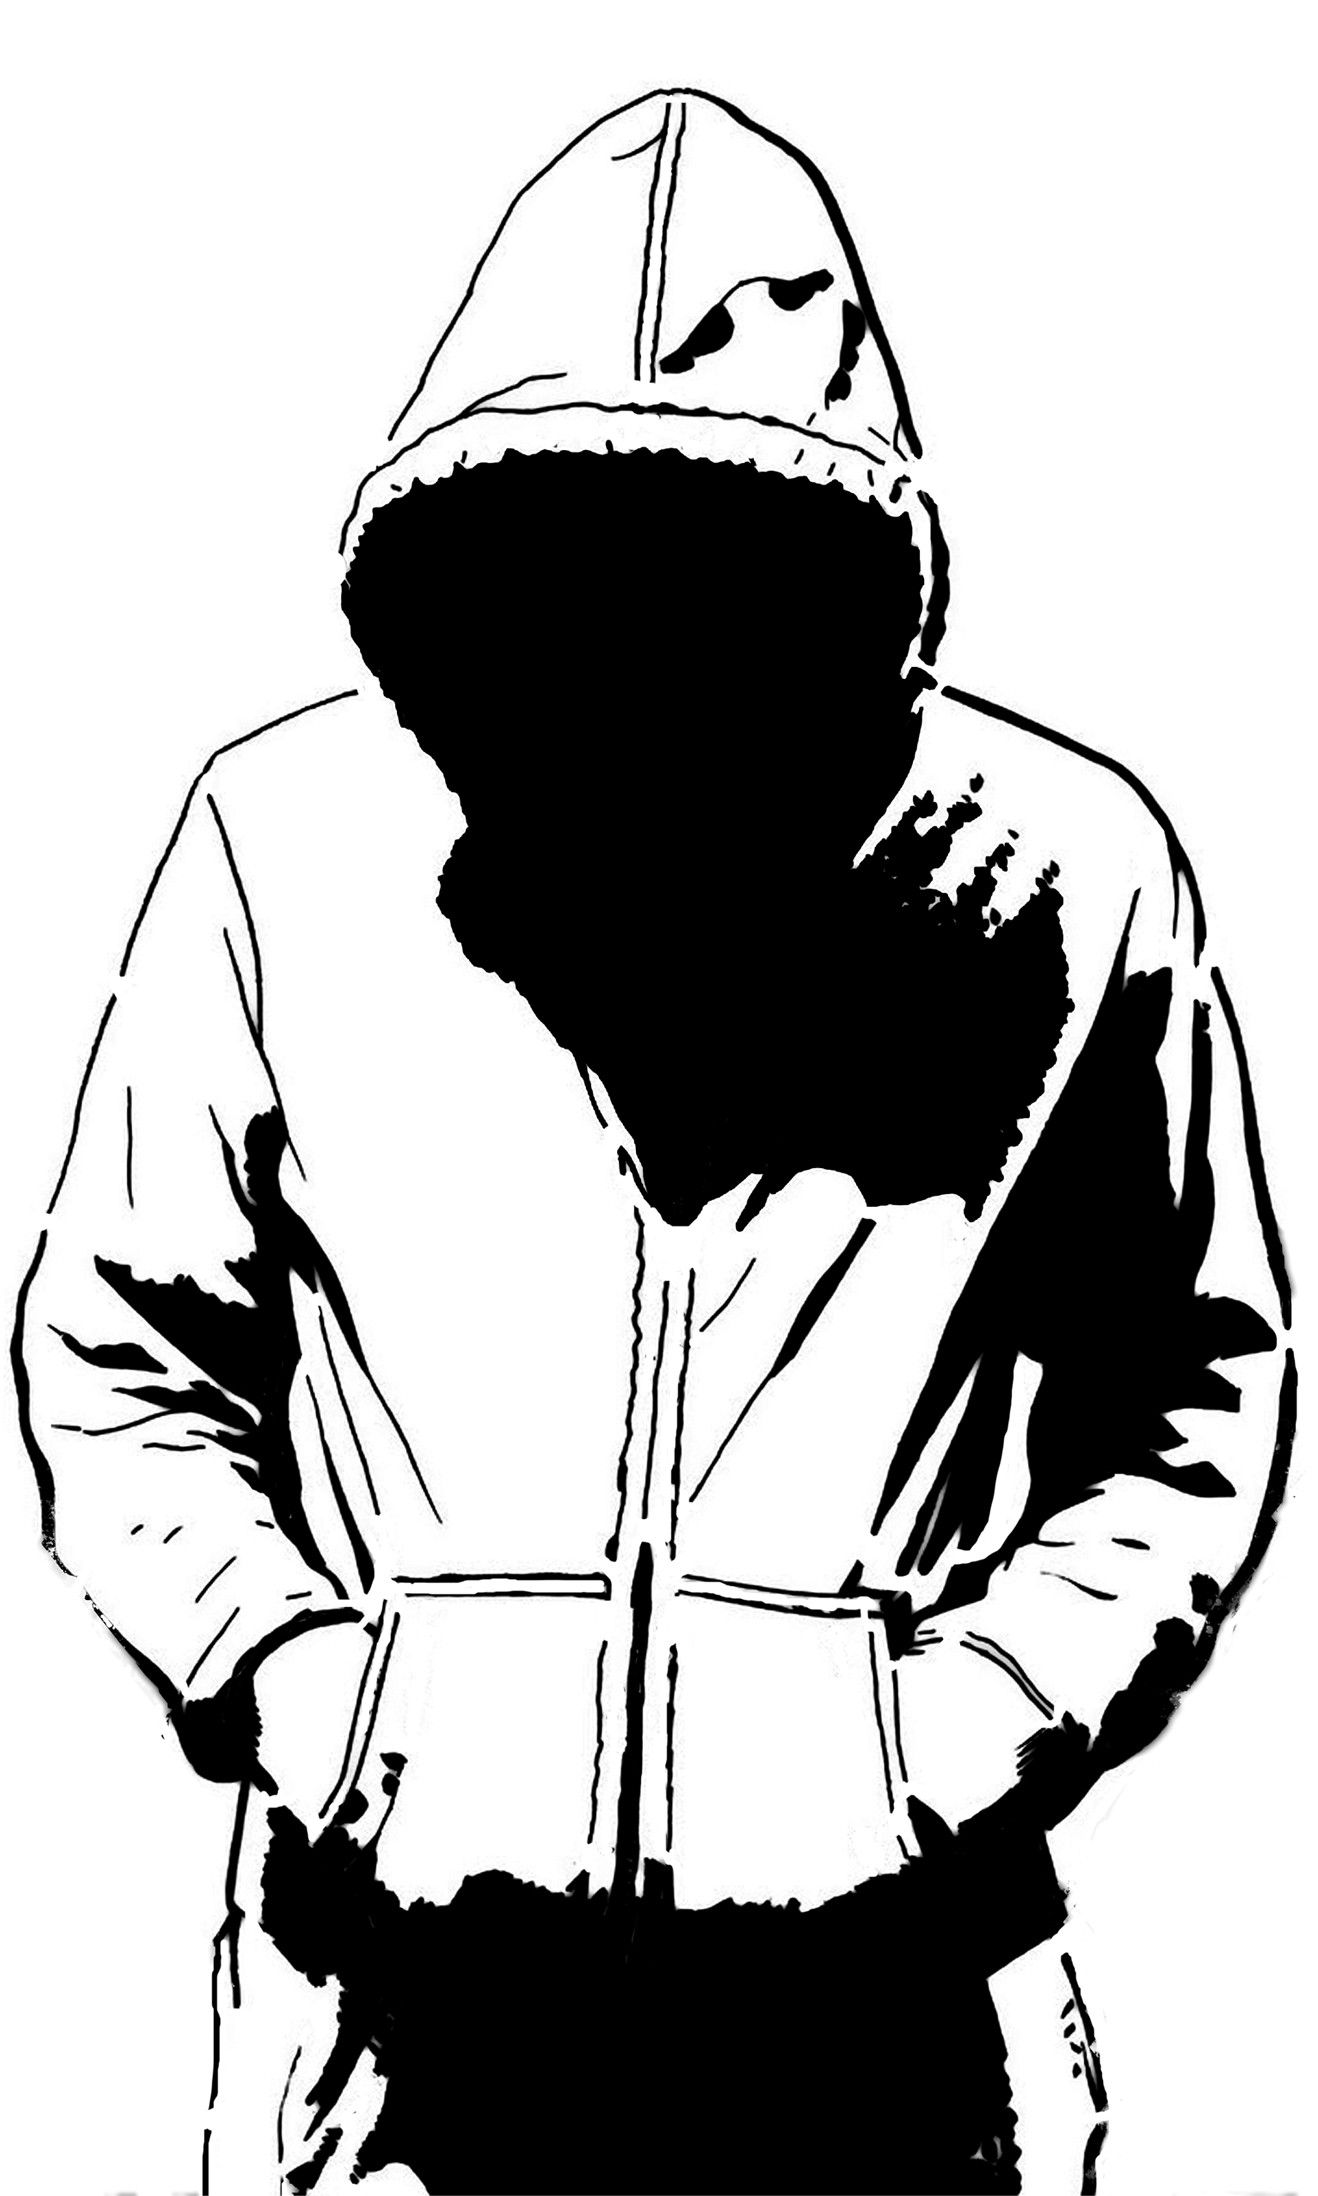 It's just a picture of Tactueux Guy In Hoodie Drawing